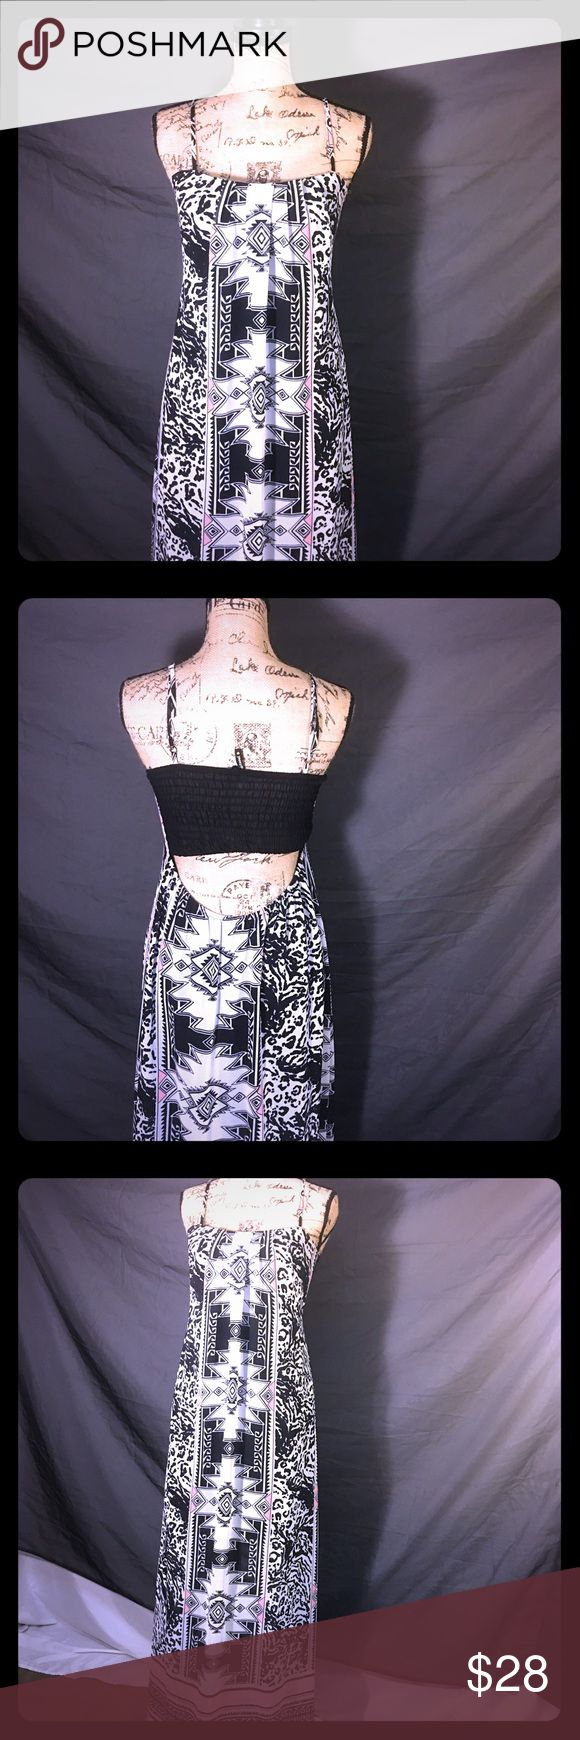 "🌼 🔥SALE TONIGHT ONLY🔥 Cheetah Tribal Maxi Dress •AS GOOD AS NEW• PERFECT CONDITION• OFFERS WELCOME•. Beautiful long sheer backless Maxi dress with a mix of black while and pink, cheetah print and tribal designs. Slip / liner underneath. Worn one time.  **I have my mannequin standing at my height 5""7. ** Dresses Maxi"